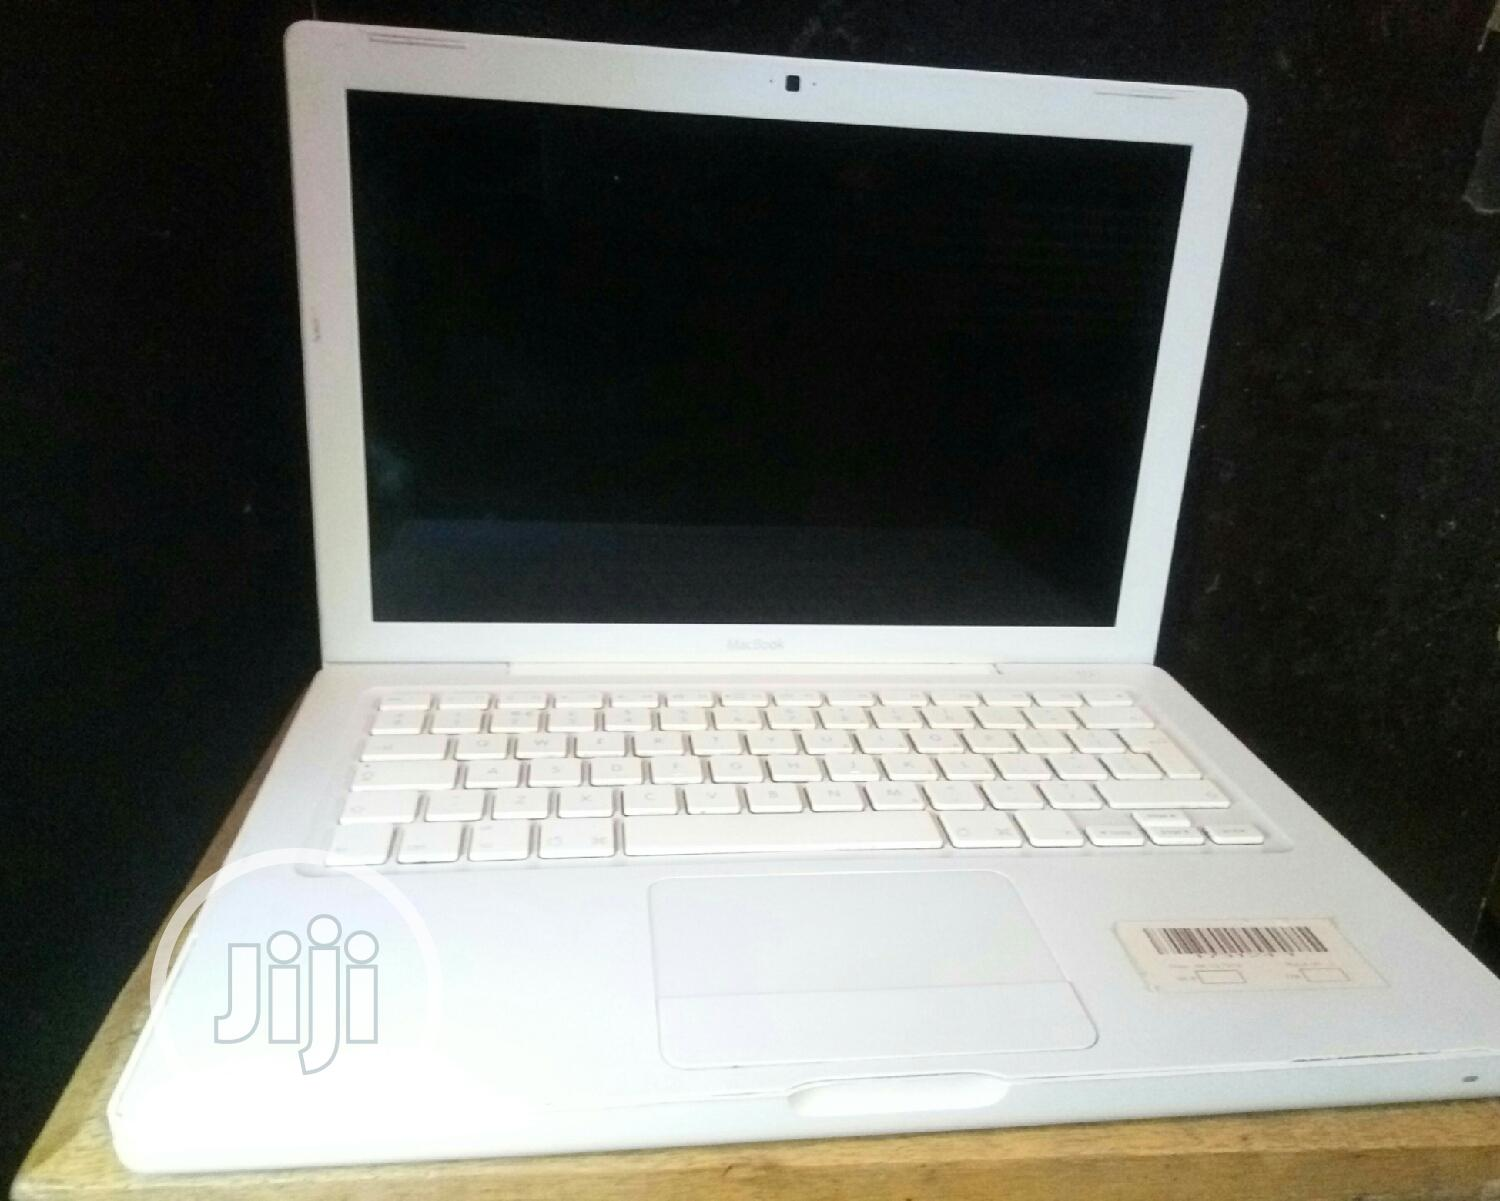 Laptop Apple MacBook 2GB Intel Core 2 Duo SSD 128GB | Laptops & Computers for sale in Agege, Lagos State, Nigeria